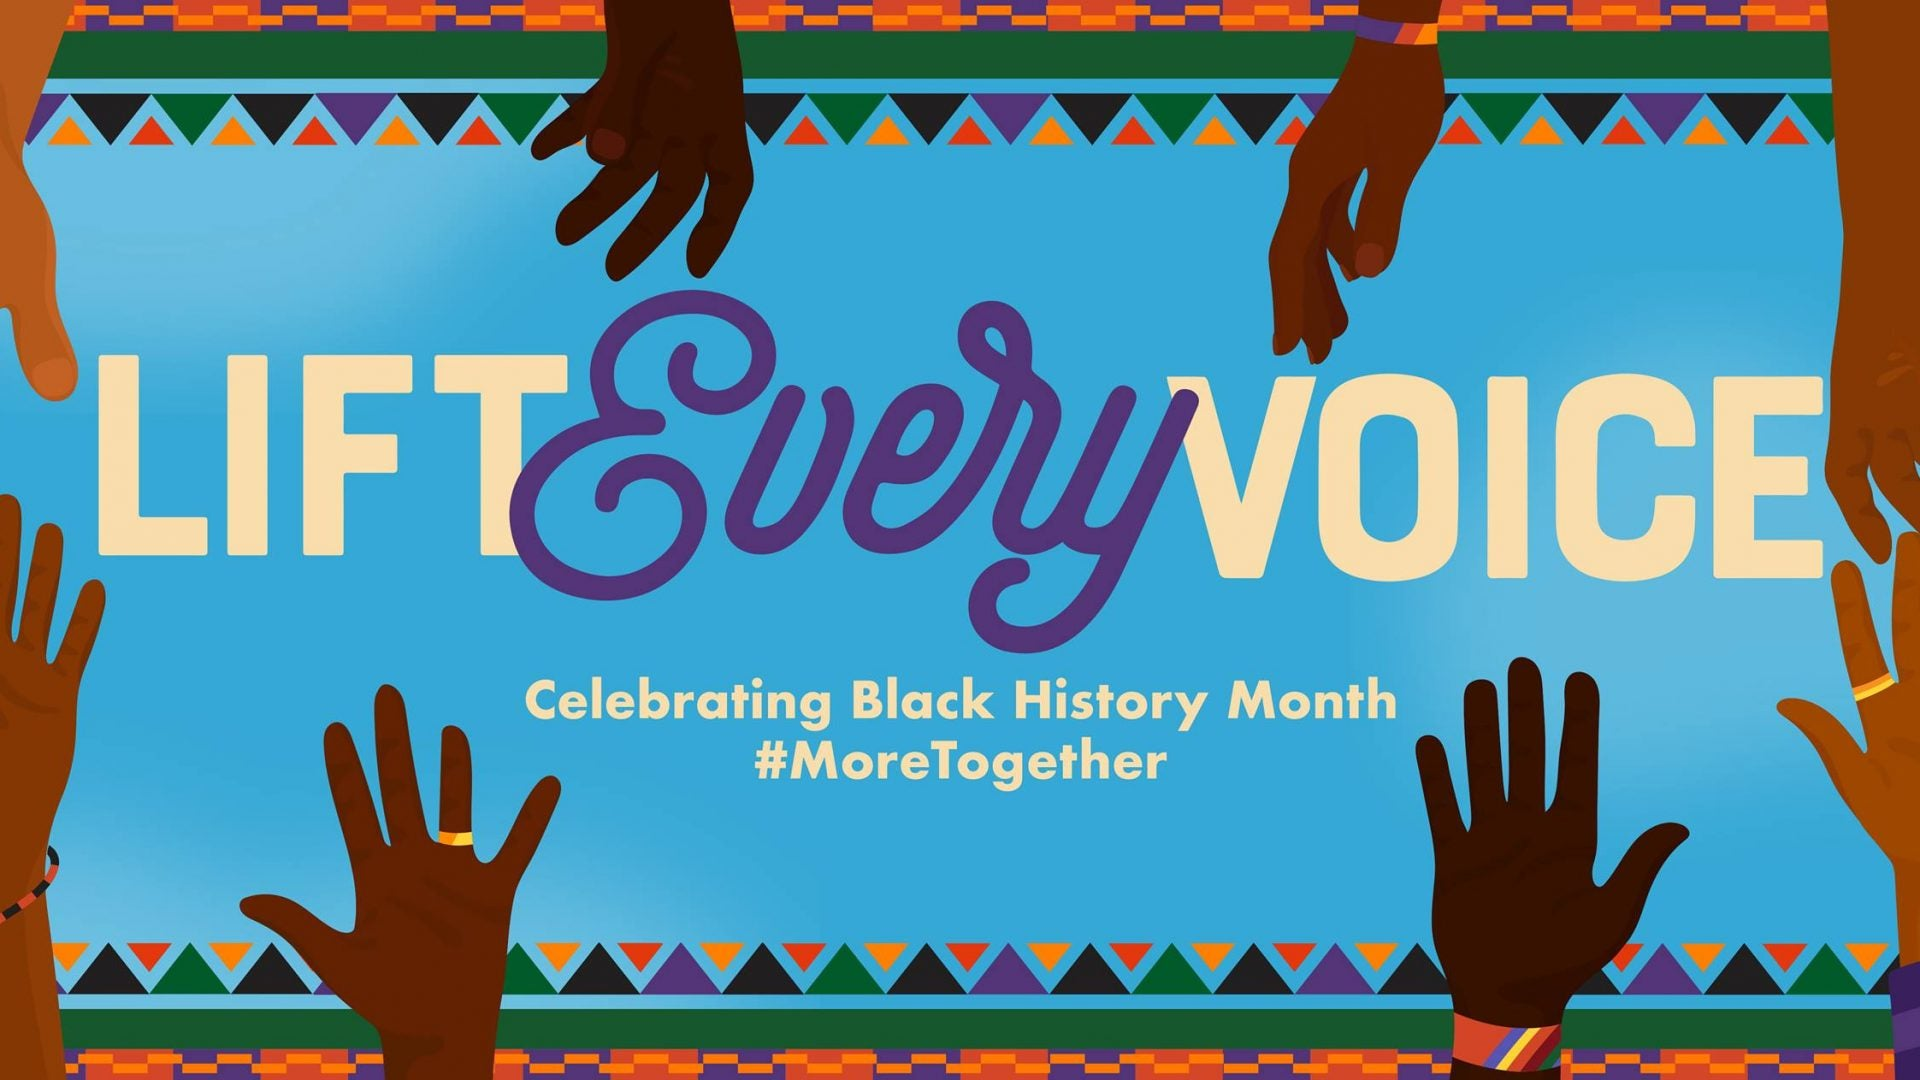 Facebook Honors Black History Month With 'Lift Every Voice' Content Series